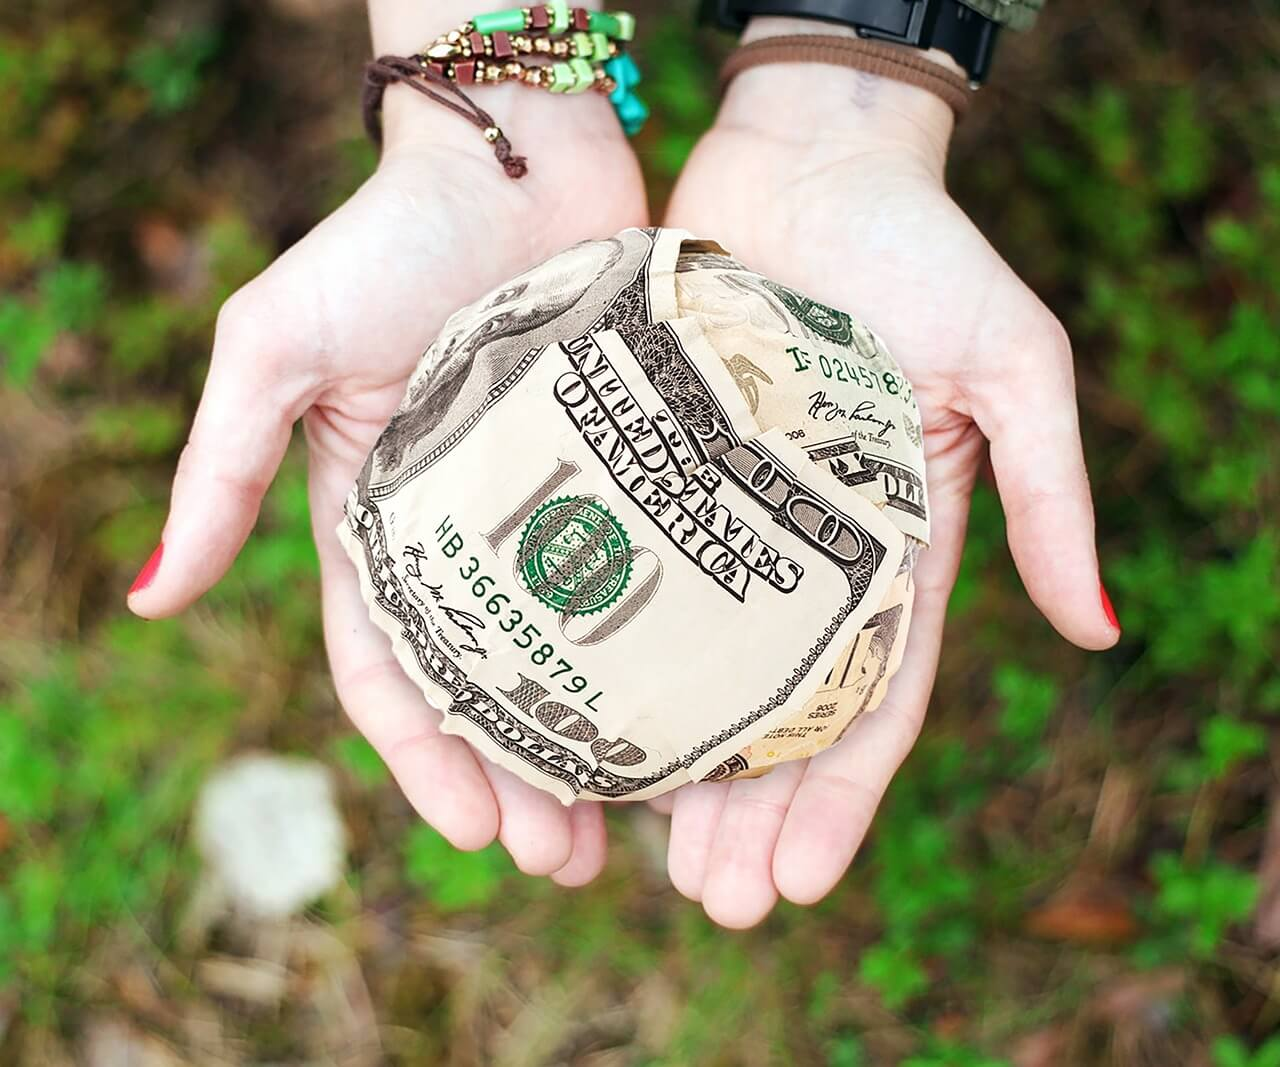 This image displays two hands holding money and portrays relevance to strategic marketing and data for nonprofit fundraising